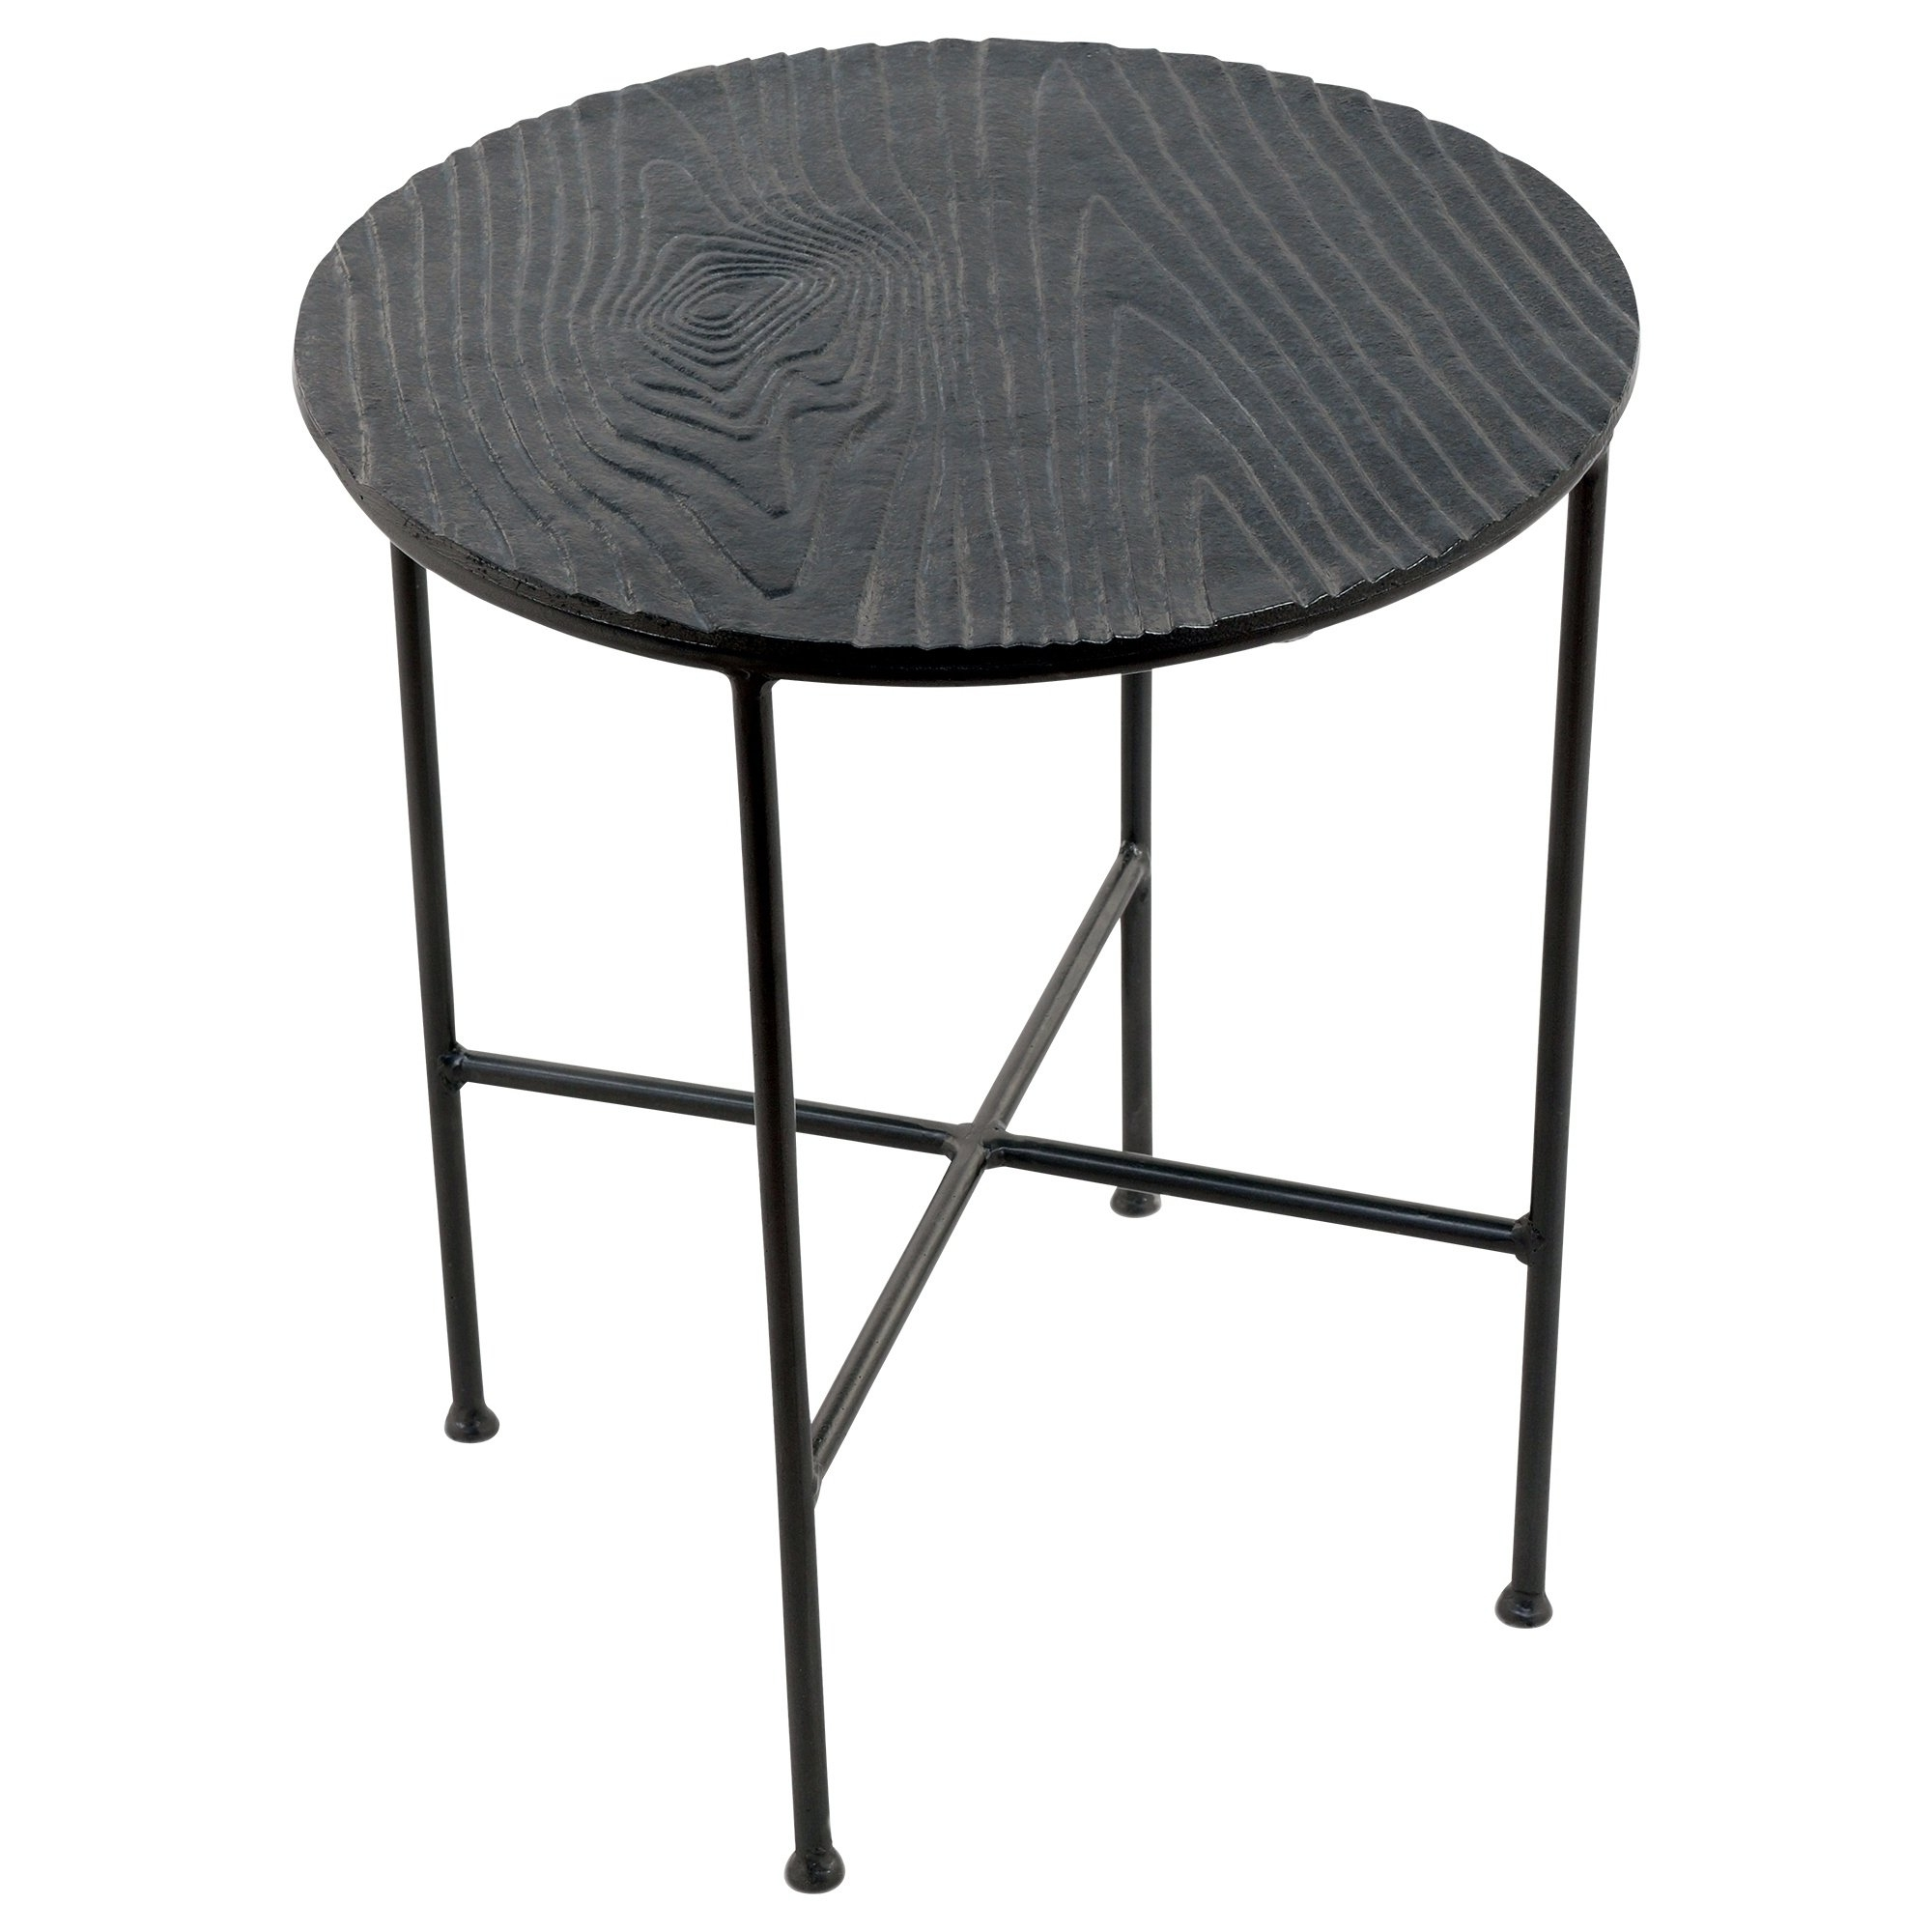 Bale Rustic Grey Dining Tables Throughout Well Known Shop Renwil Bale Grey Aluminum Round Accent Table – Free Shipping (View 6 of 25)